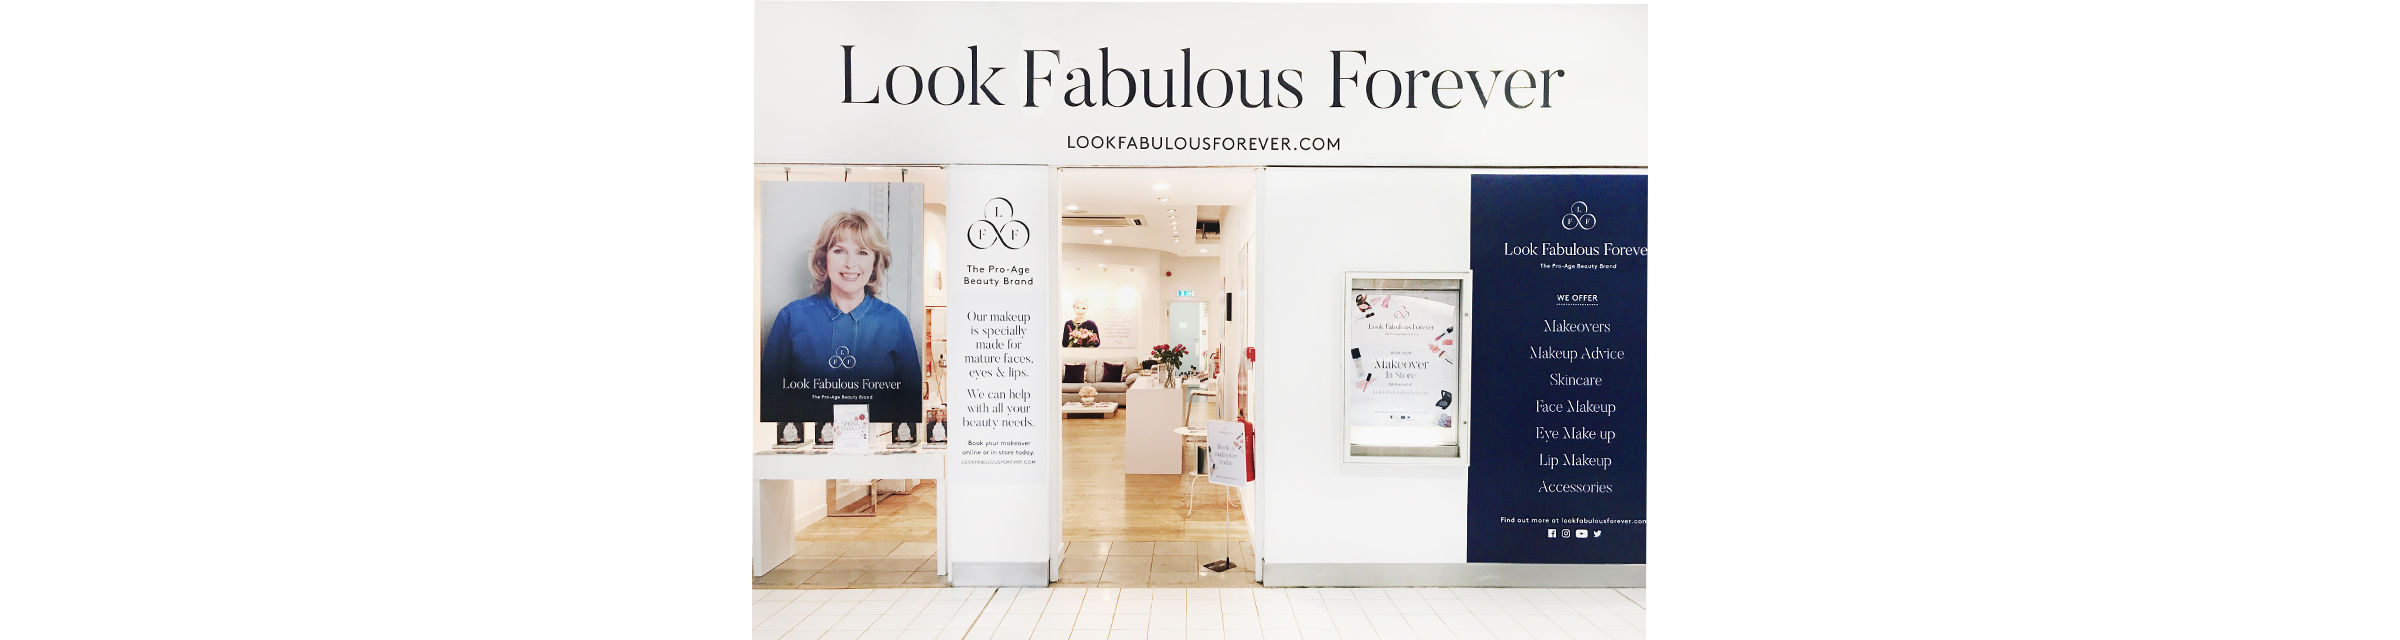 Look Fabulous Forever Store, Wimbledon and Guildford.